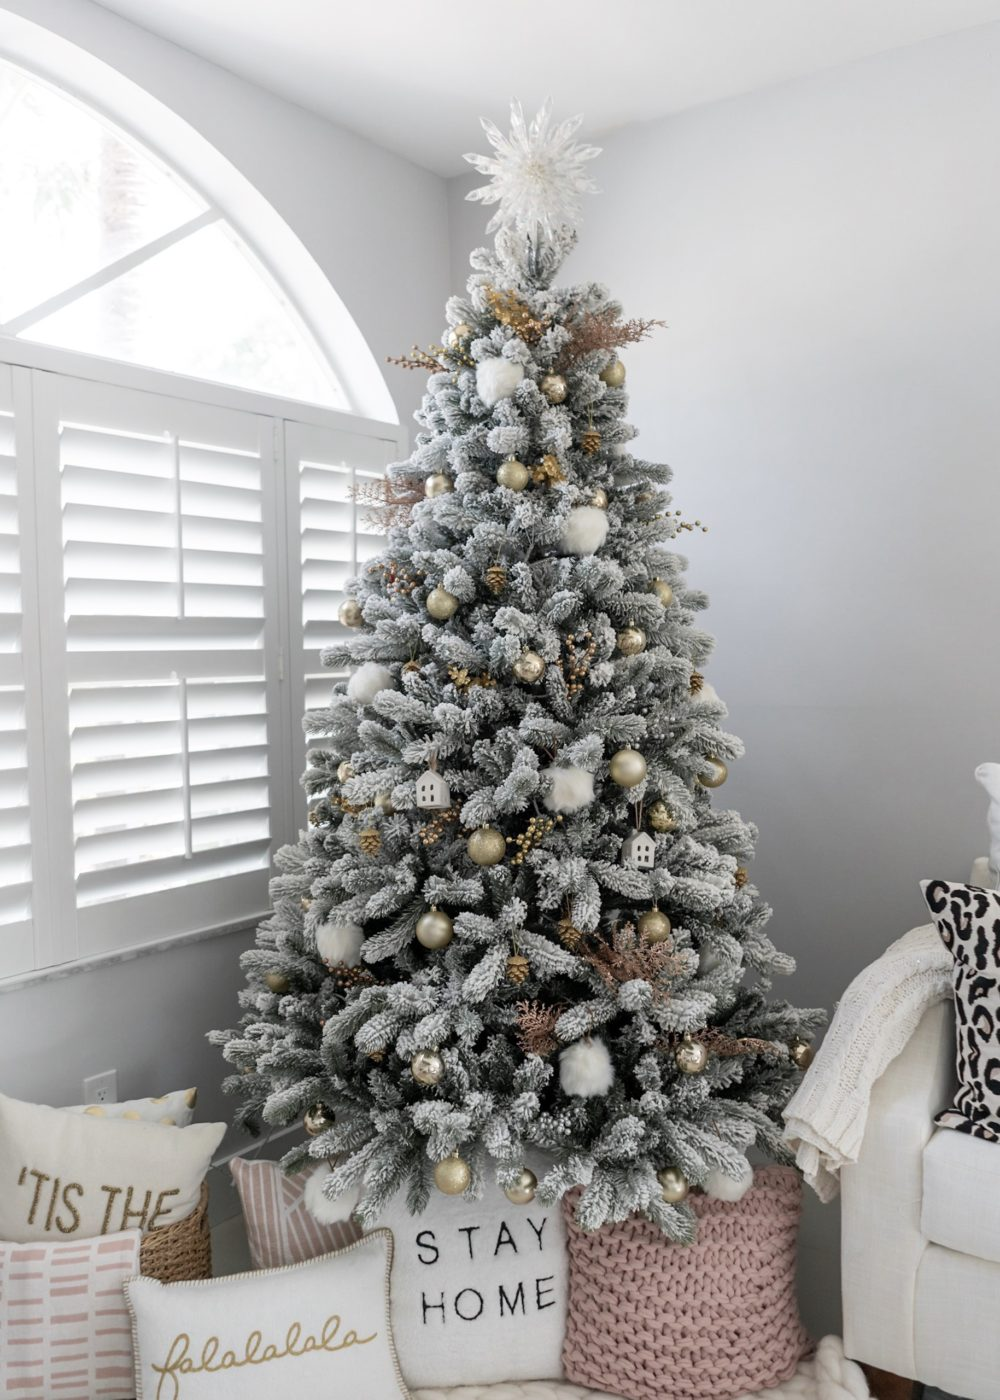 How We Decorated Our Christmas Tree - The Fancy Things